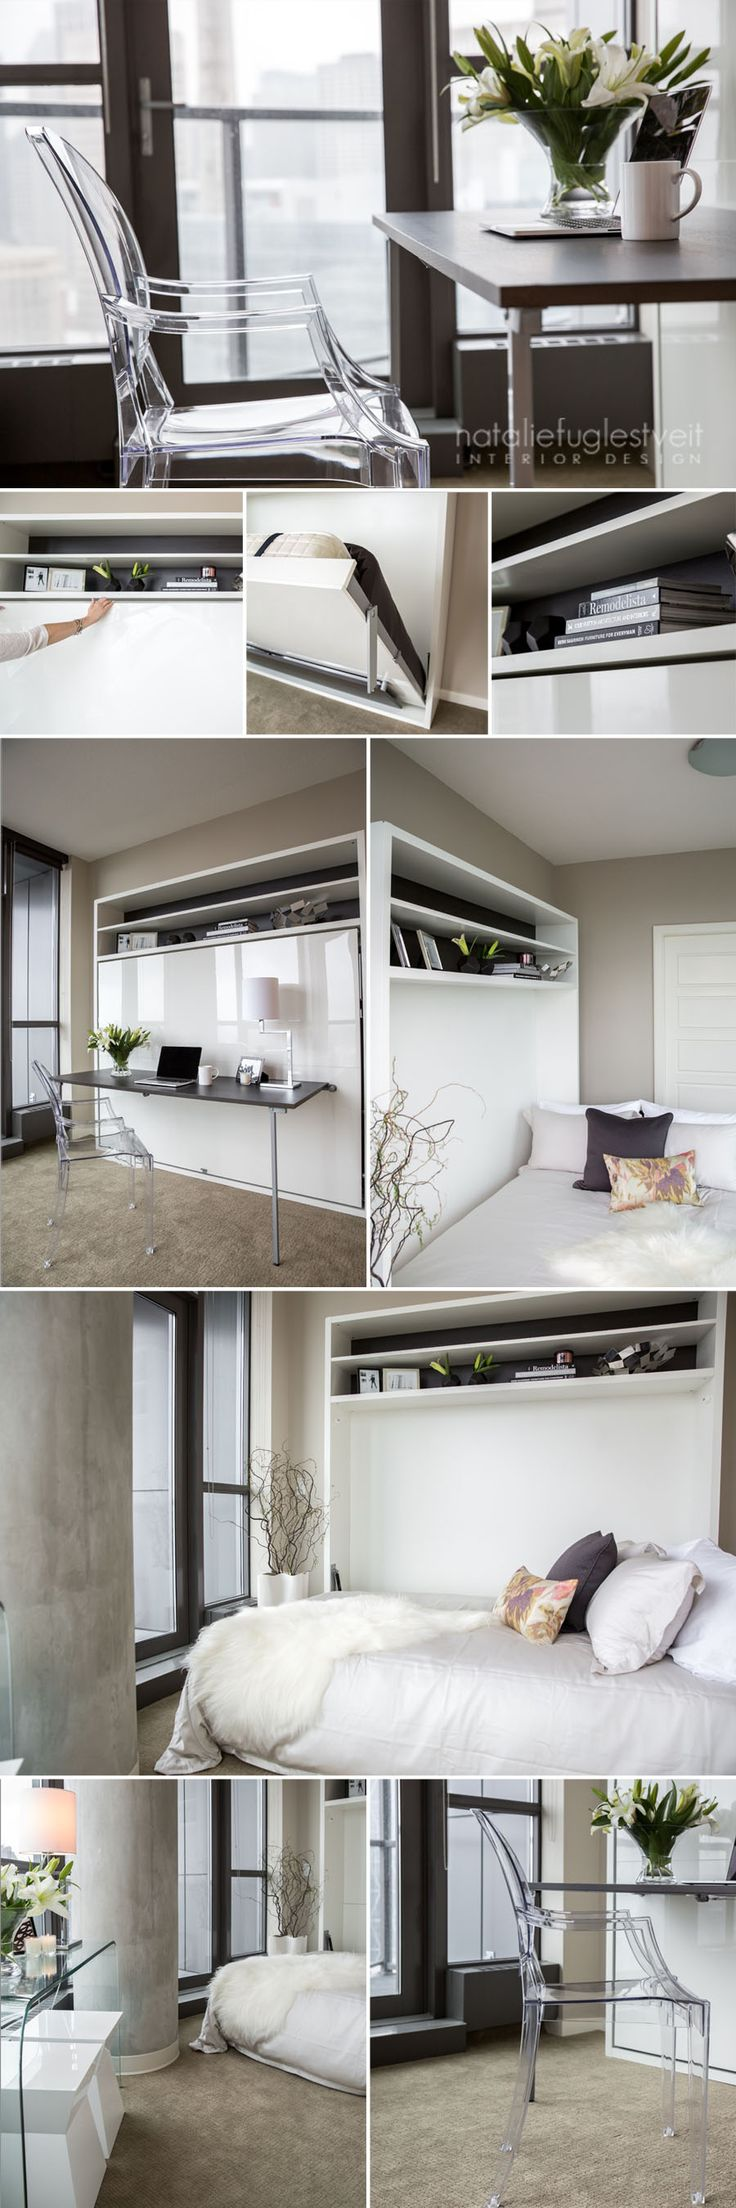 Condo bedroom office with murphy bed by calgary interior for Murphy bed interior design